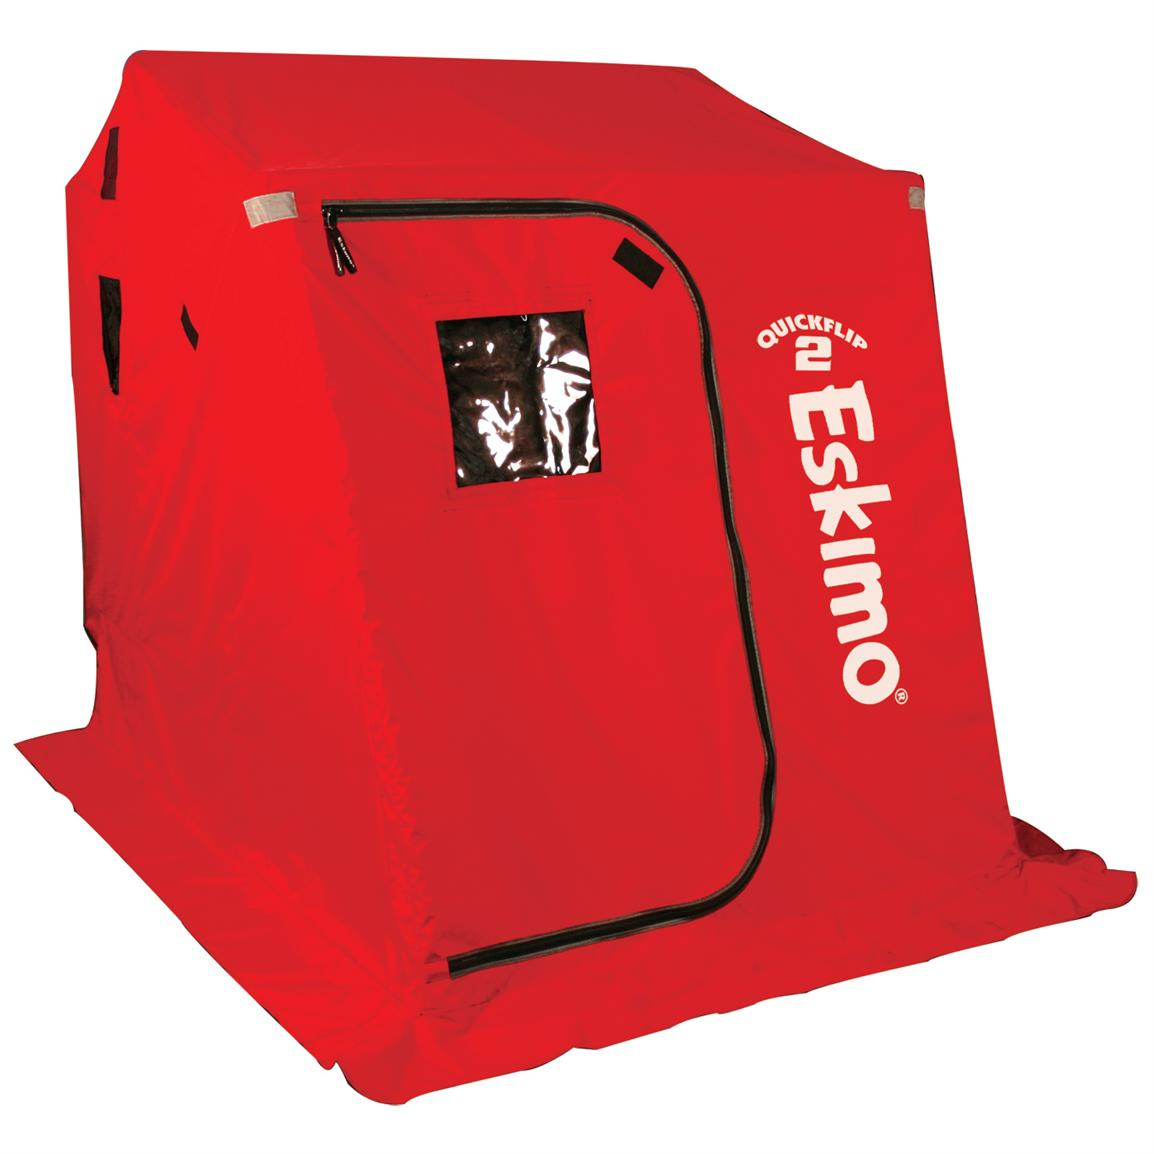 Eskimo Quickflip 2 Ice Fishing Shelter 1 Person 191286